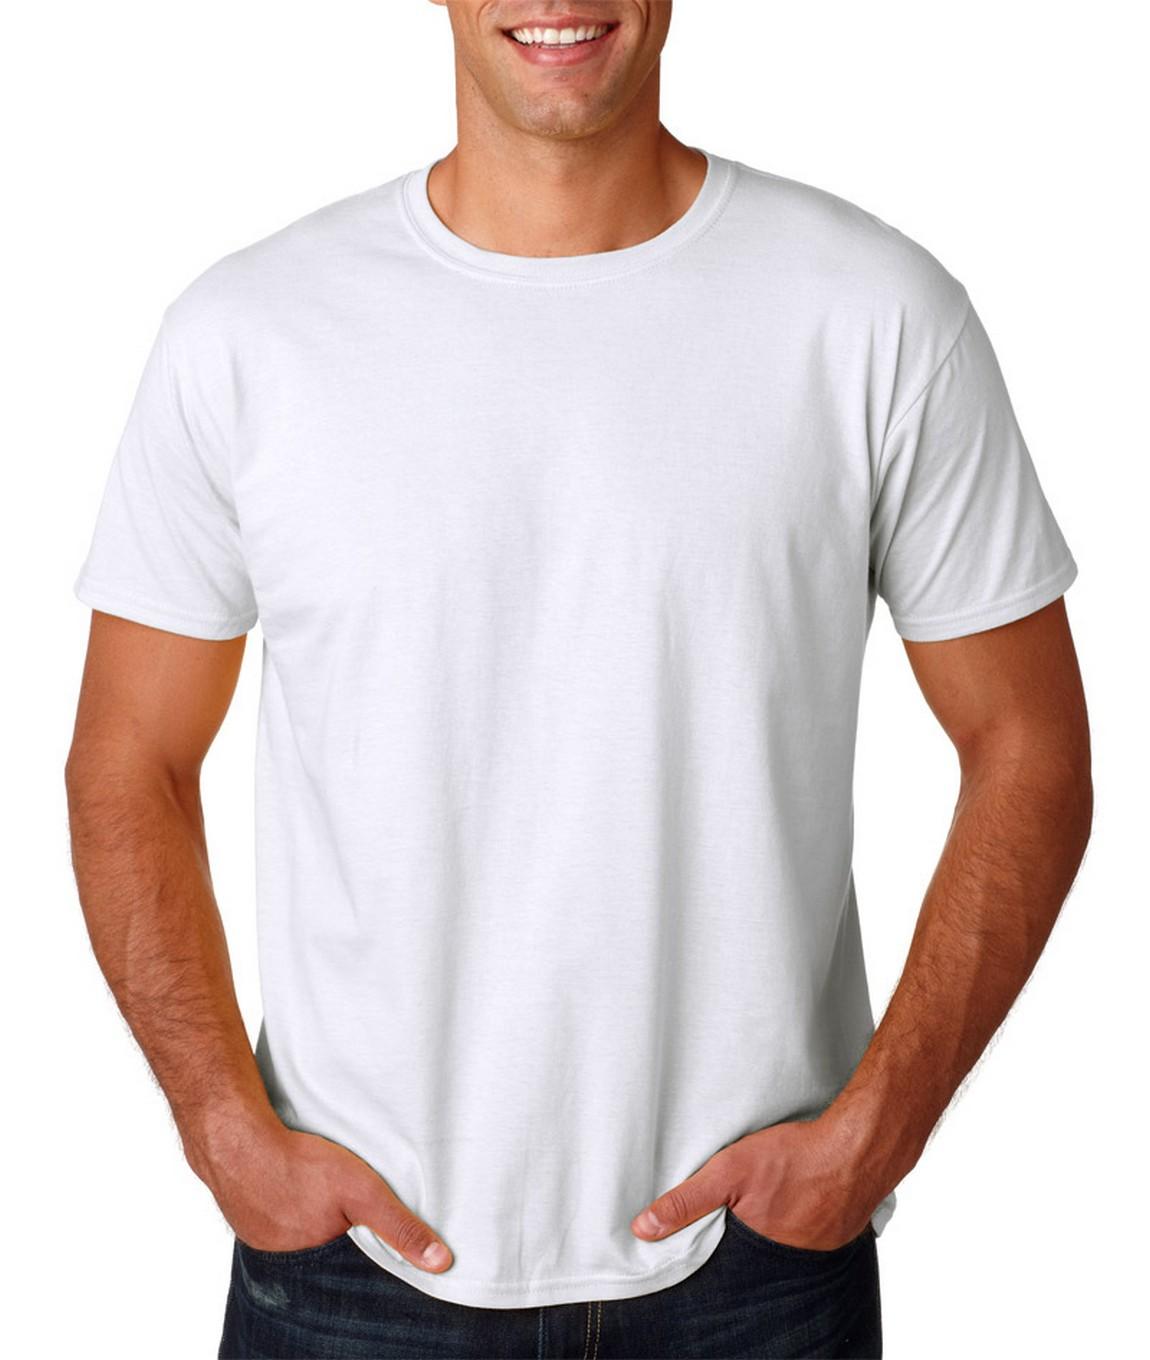 Clipart Images Best Blank T Shirt Free image #30263